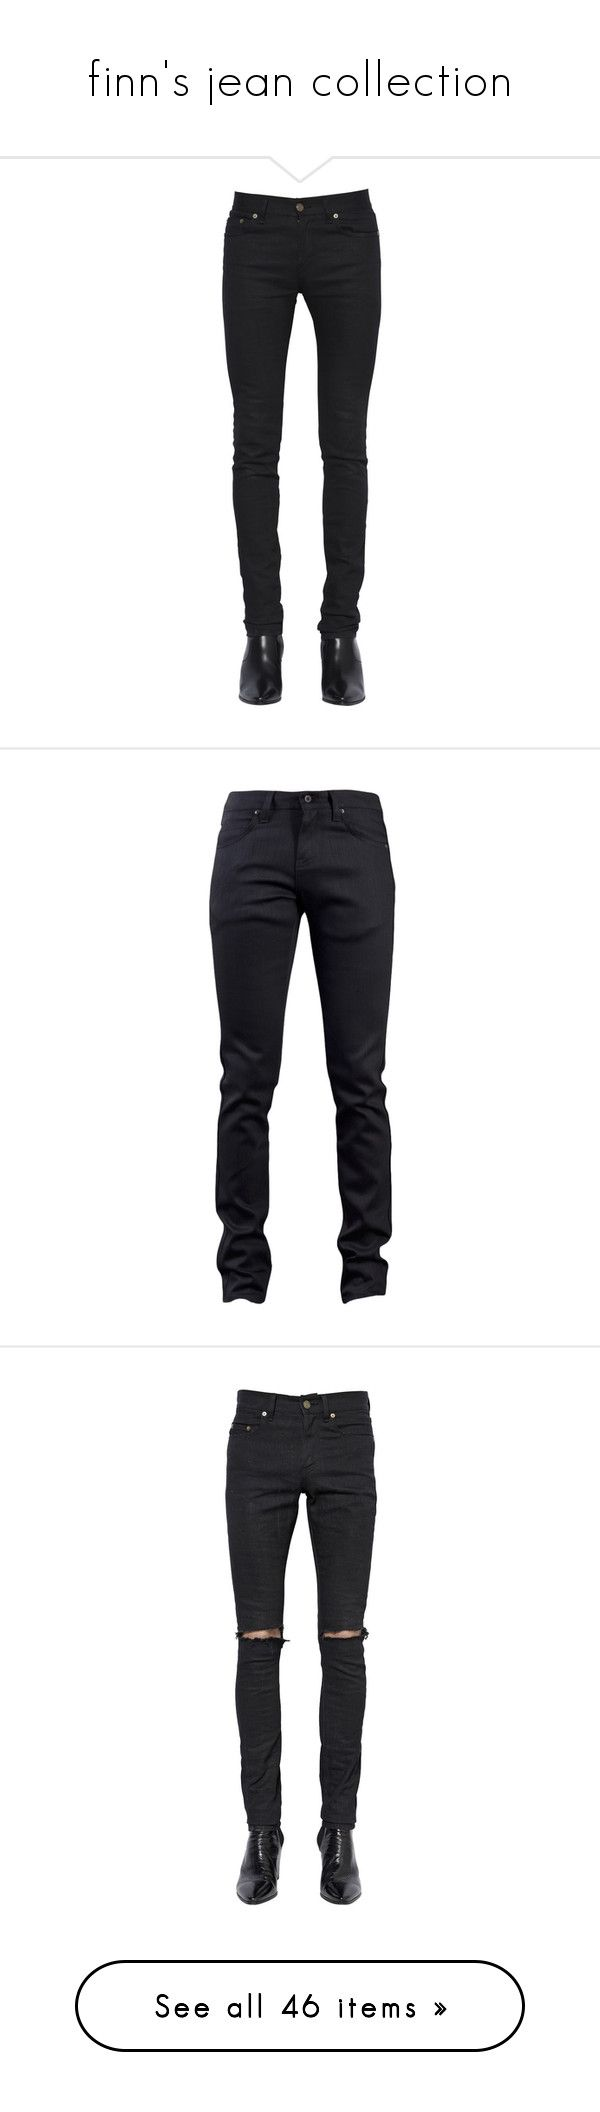 """""""finn's jean collection"""" by pil0tj0nes ❤ liked on Polyvore featuring men's fashion, men's clothing, men's jeans, jeans, pants, black, mens super skinny jeans, mens skinny fit jeans, mens button fly jeans and mens skinny jeans"""